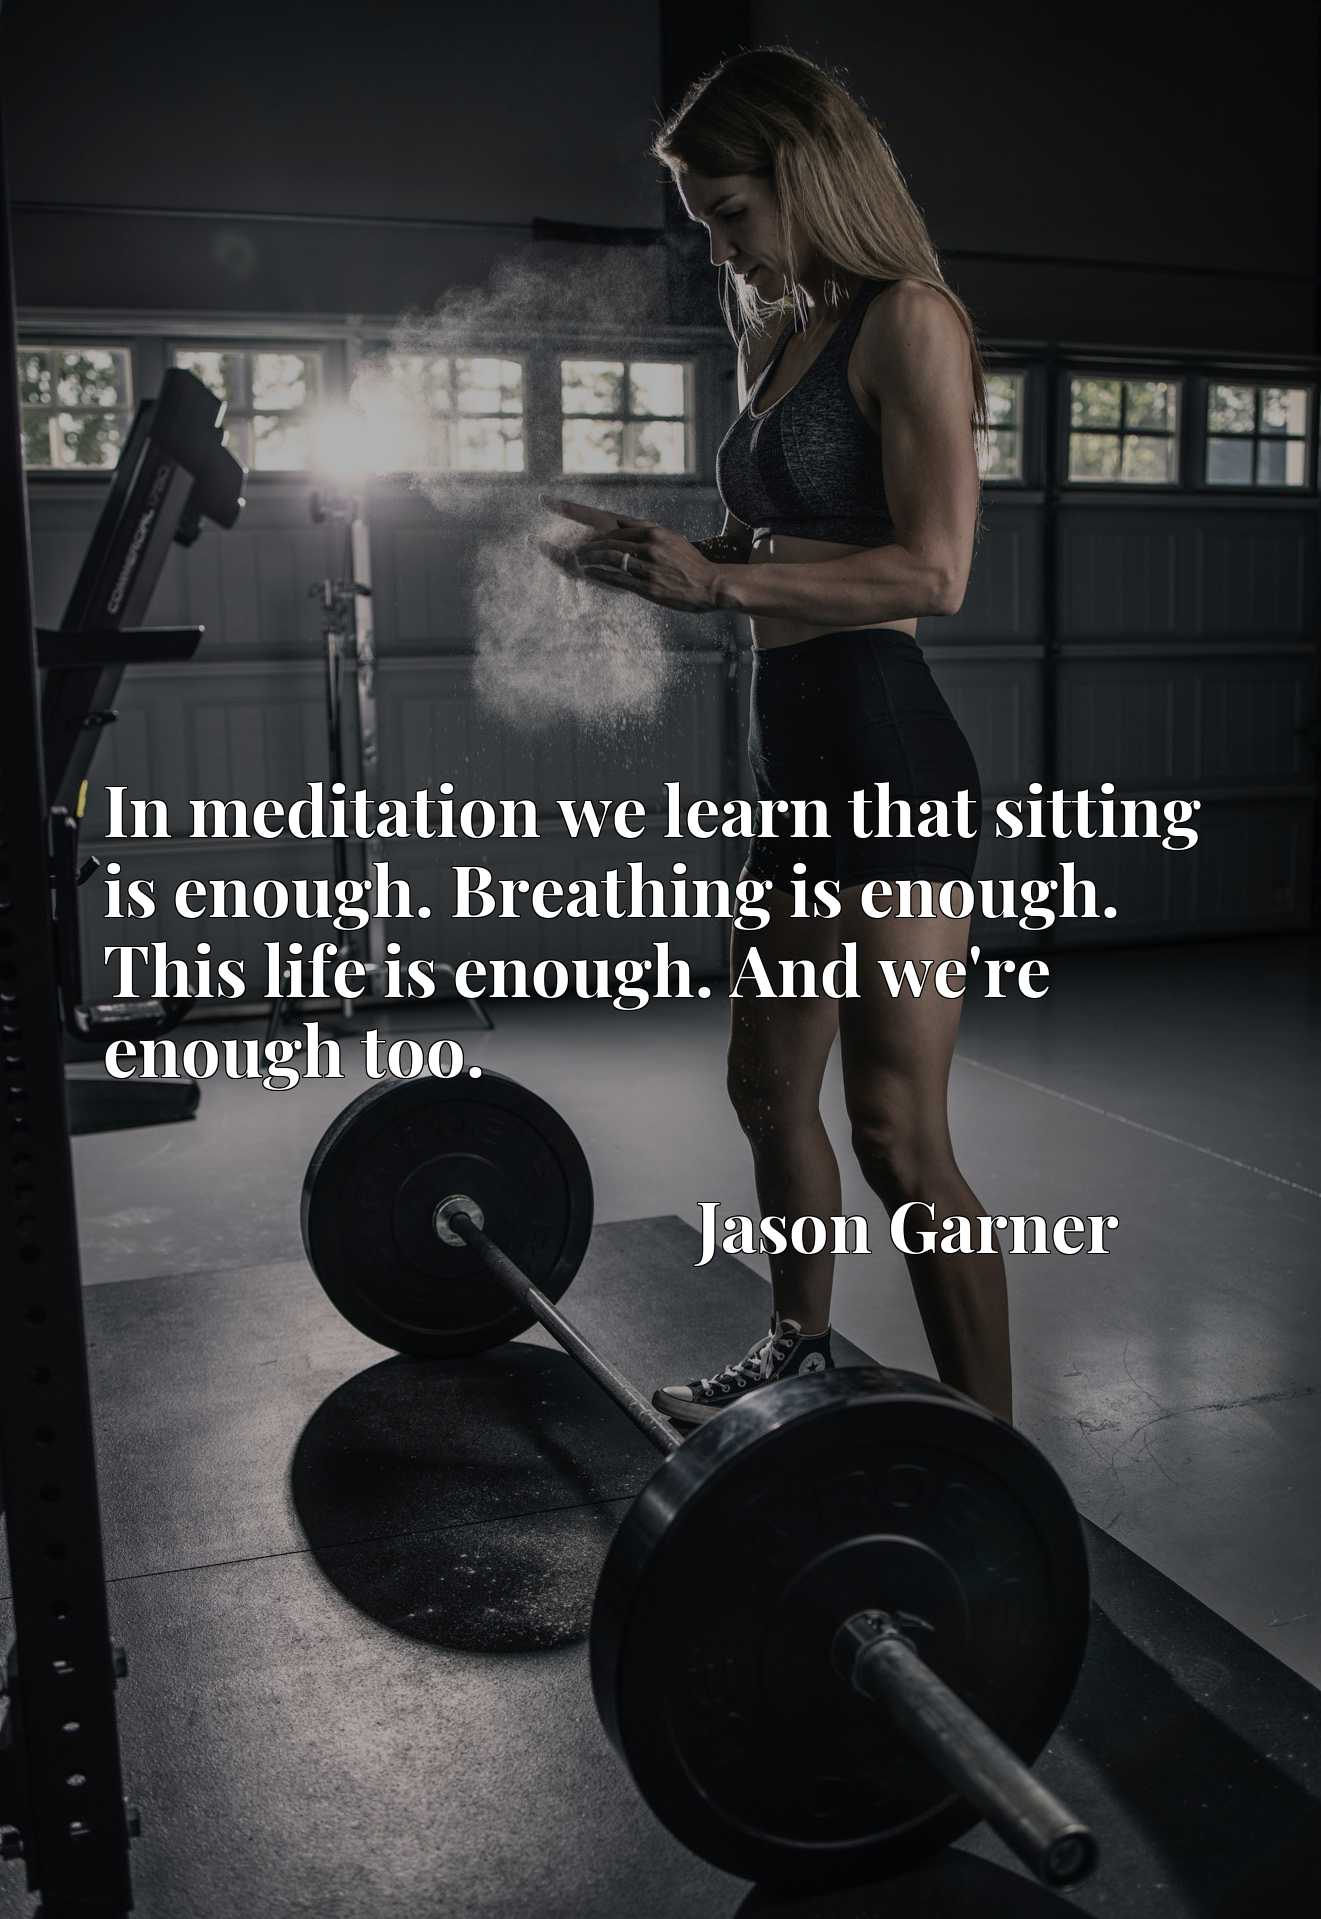 In meditation we learn that sitting is enough. Breathing is enough. This life is enough. And we're enough too.